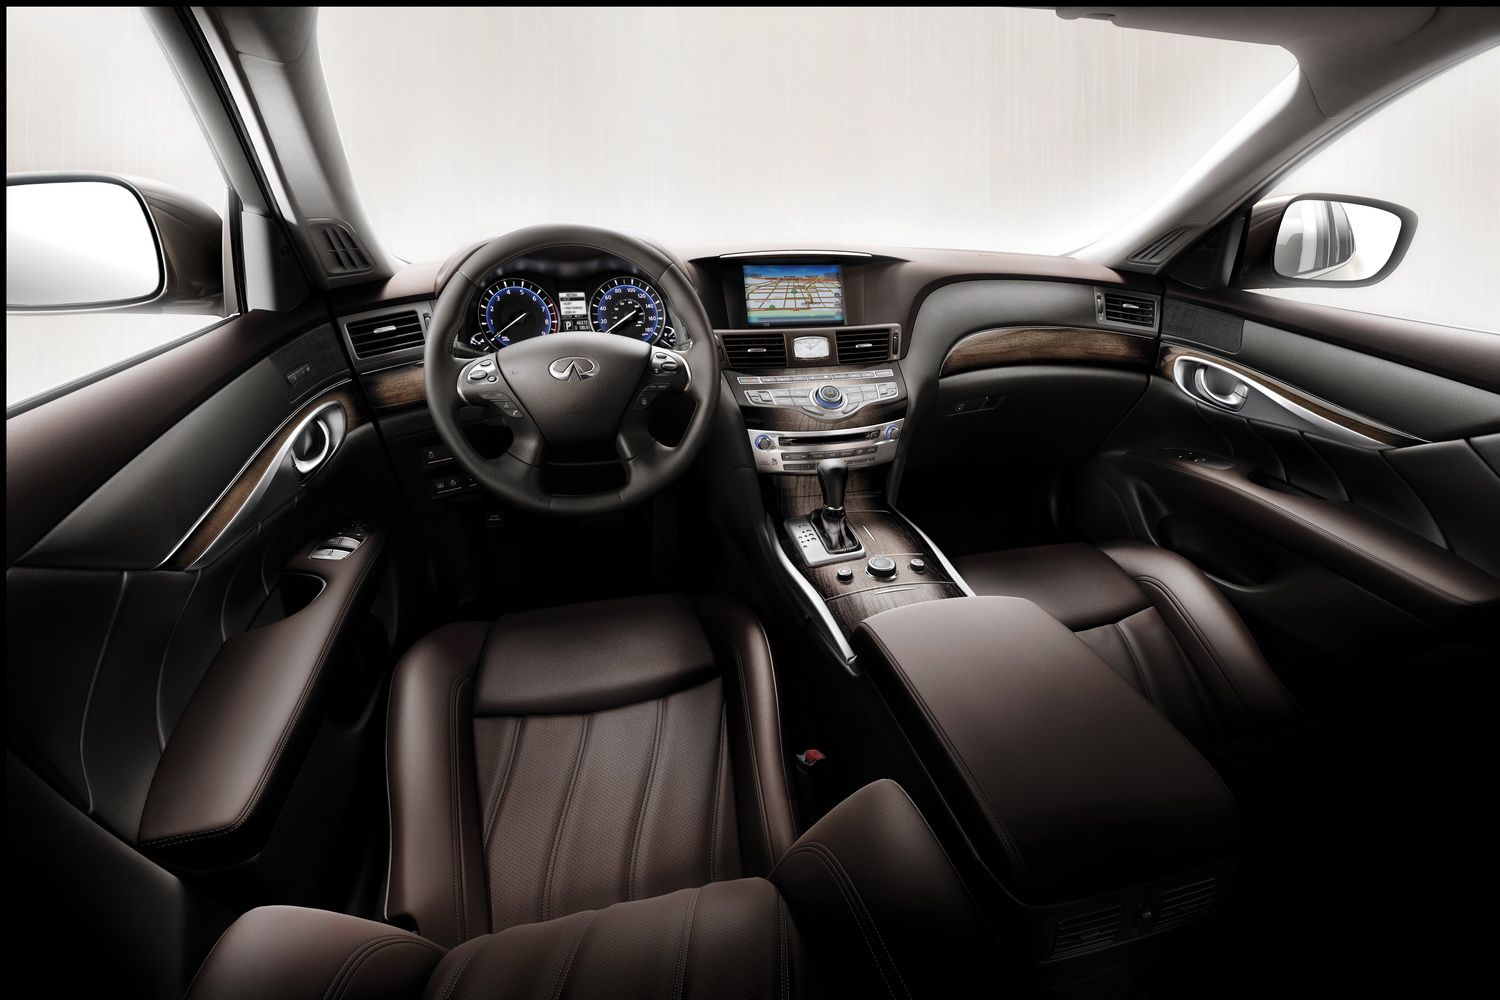 New 2011 Infiniti M37 And M56 Sports Sedans First Official Photos Revealed It S Your Auto